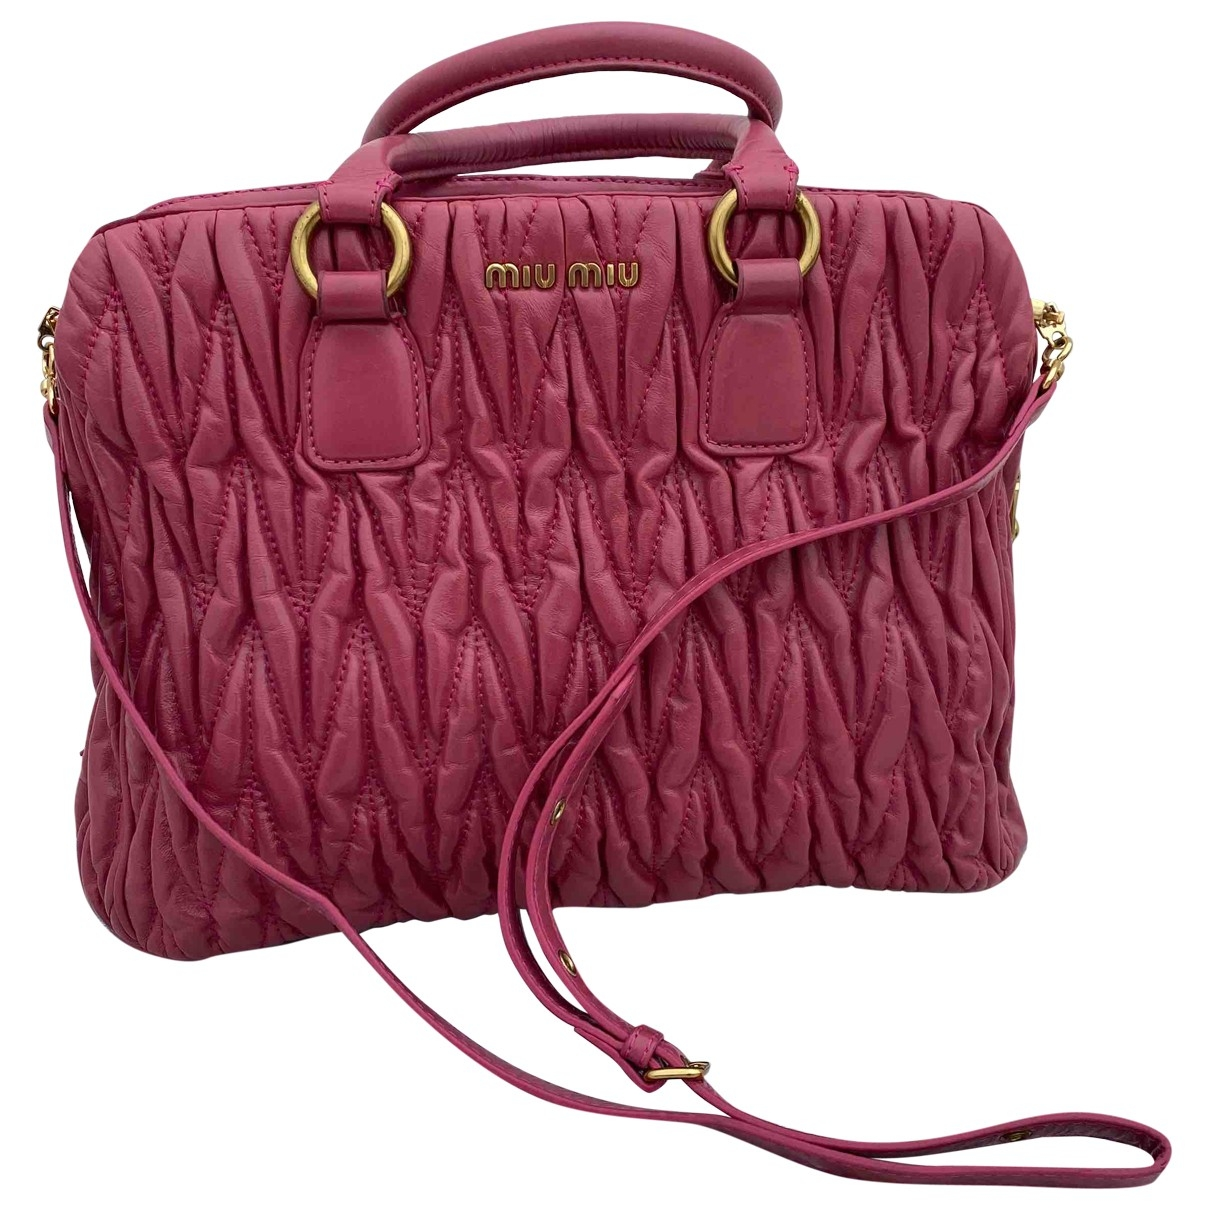 Miu Miu Matelassé Leather handbag for Women \N